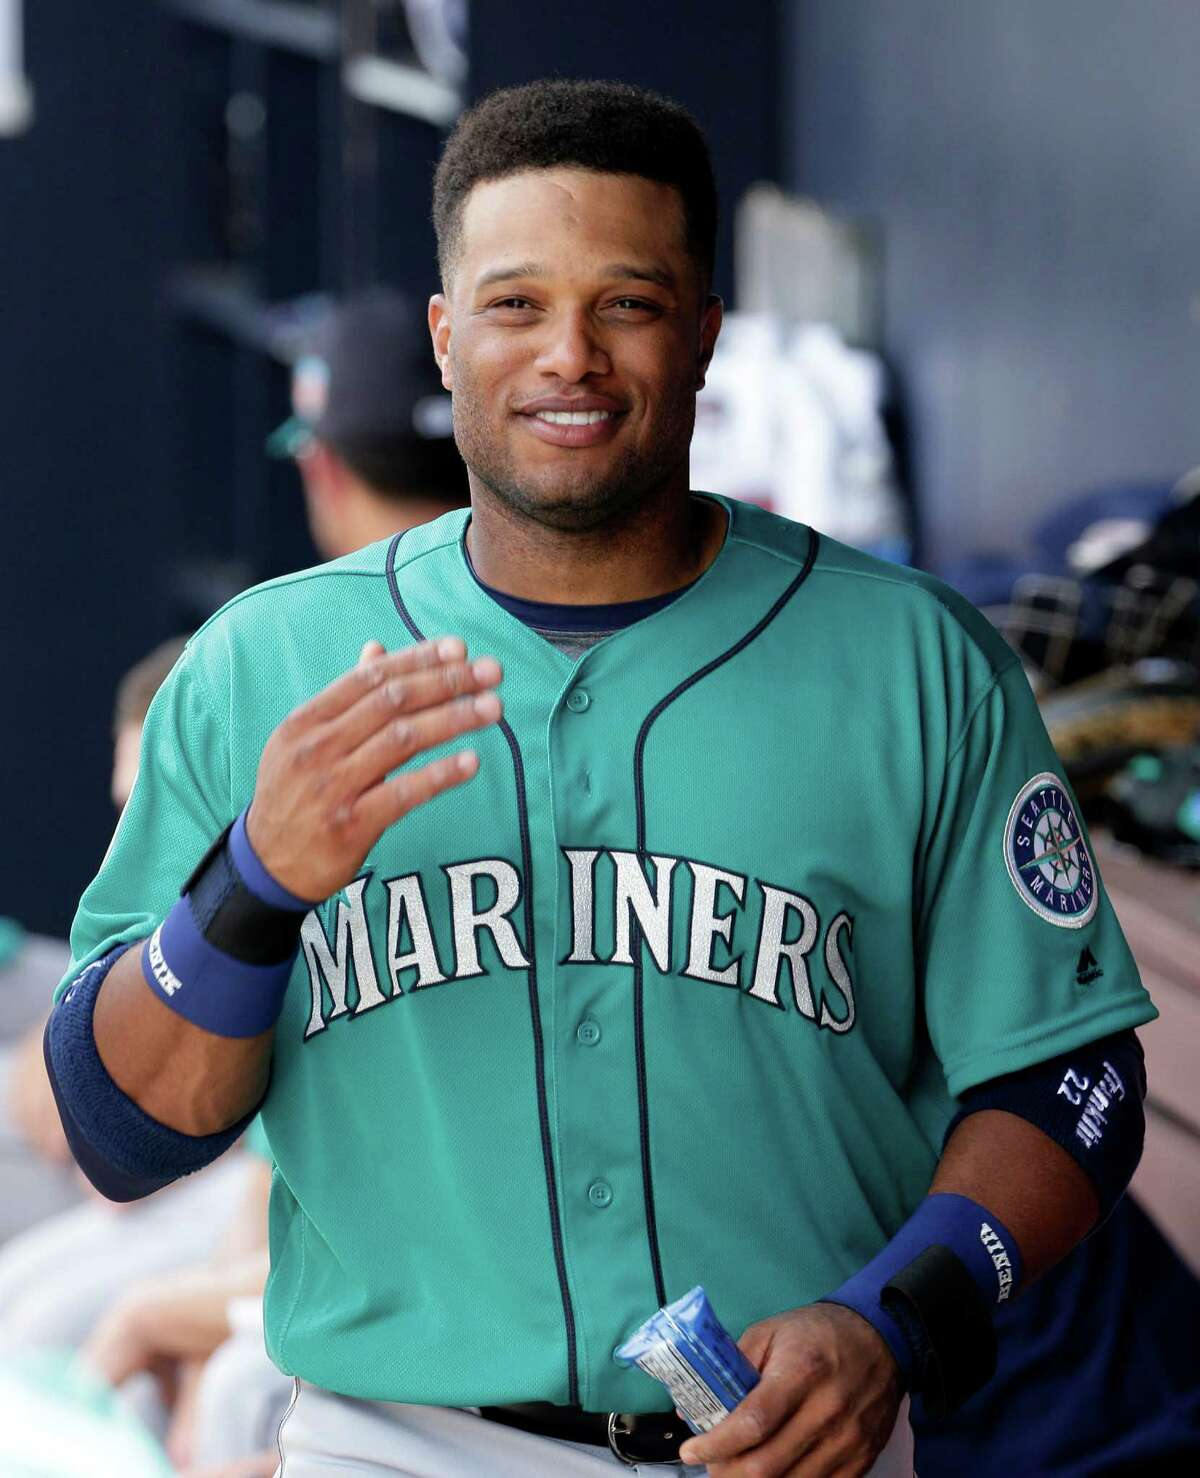 Seattle Mariners Robinson Cano during the second inning of a spring training baseball game against the San Diego Padres Thursday, March 3, 2016, in Peoria, Arizona.